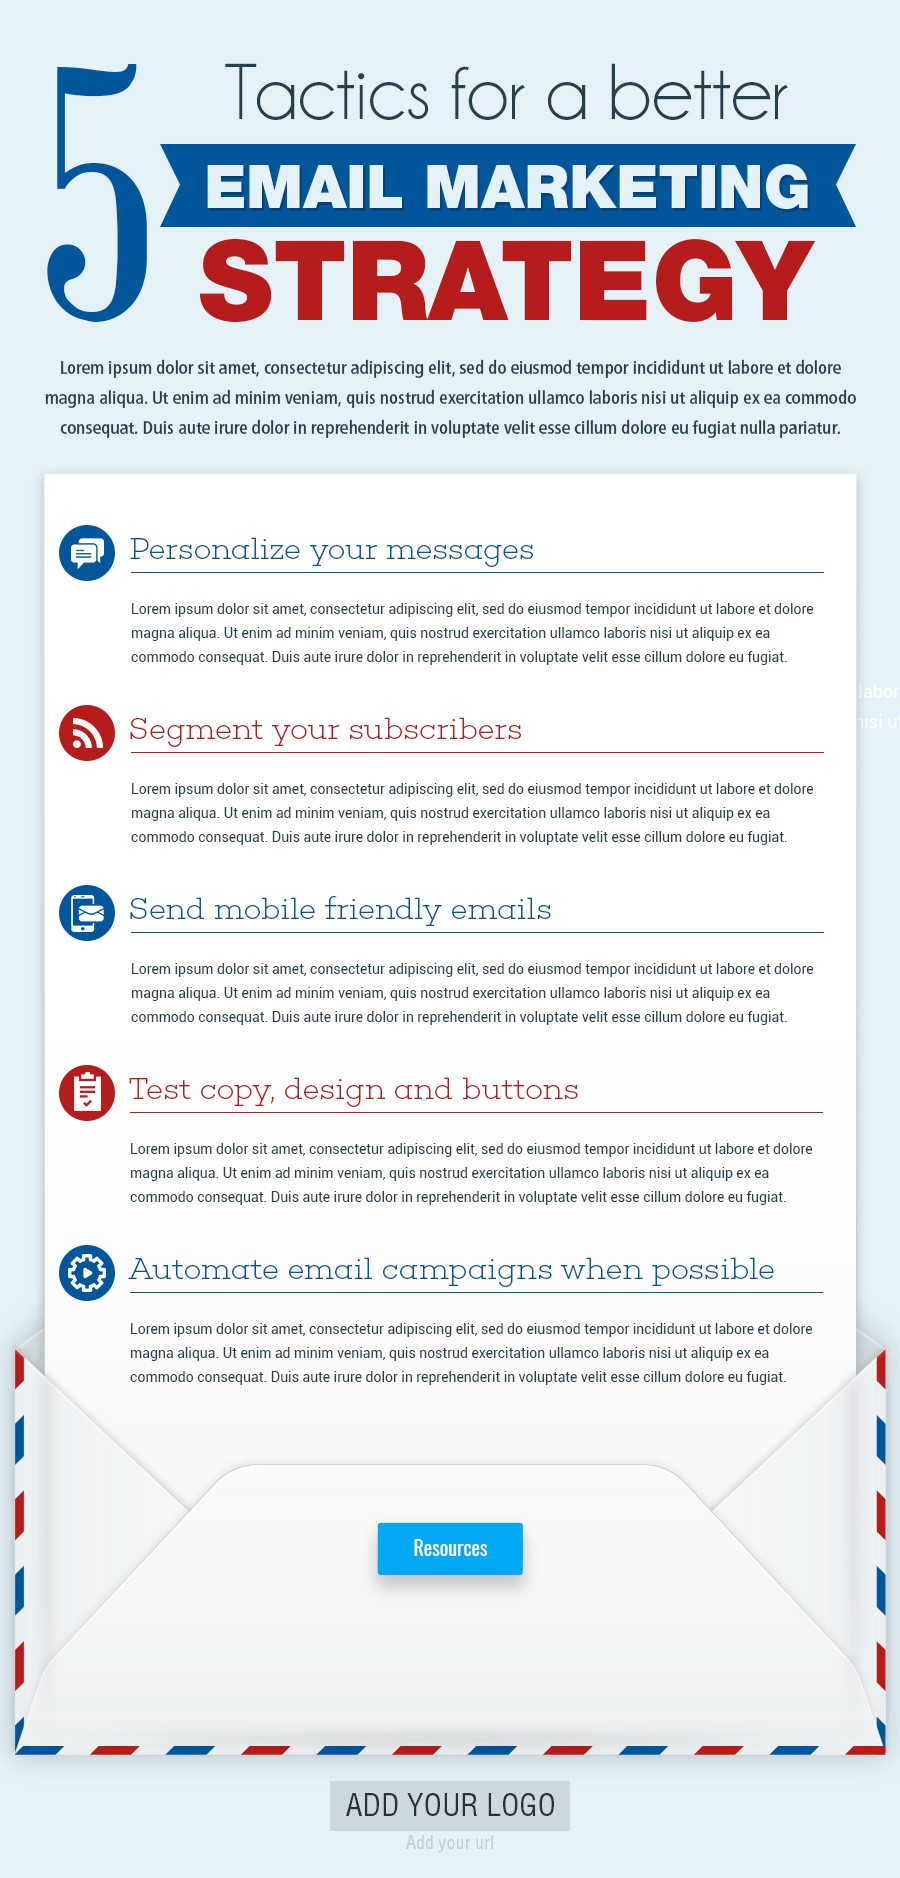 5 Tactics For a Better Email Marketing Strategy | Adlibweb